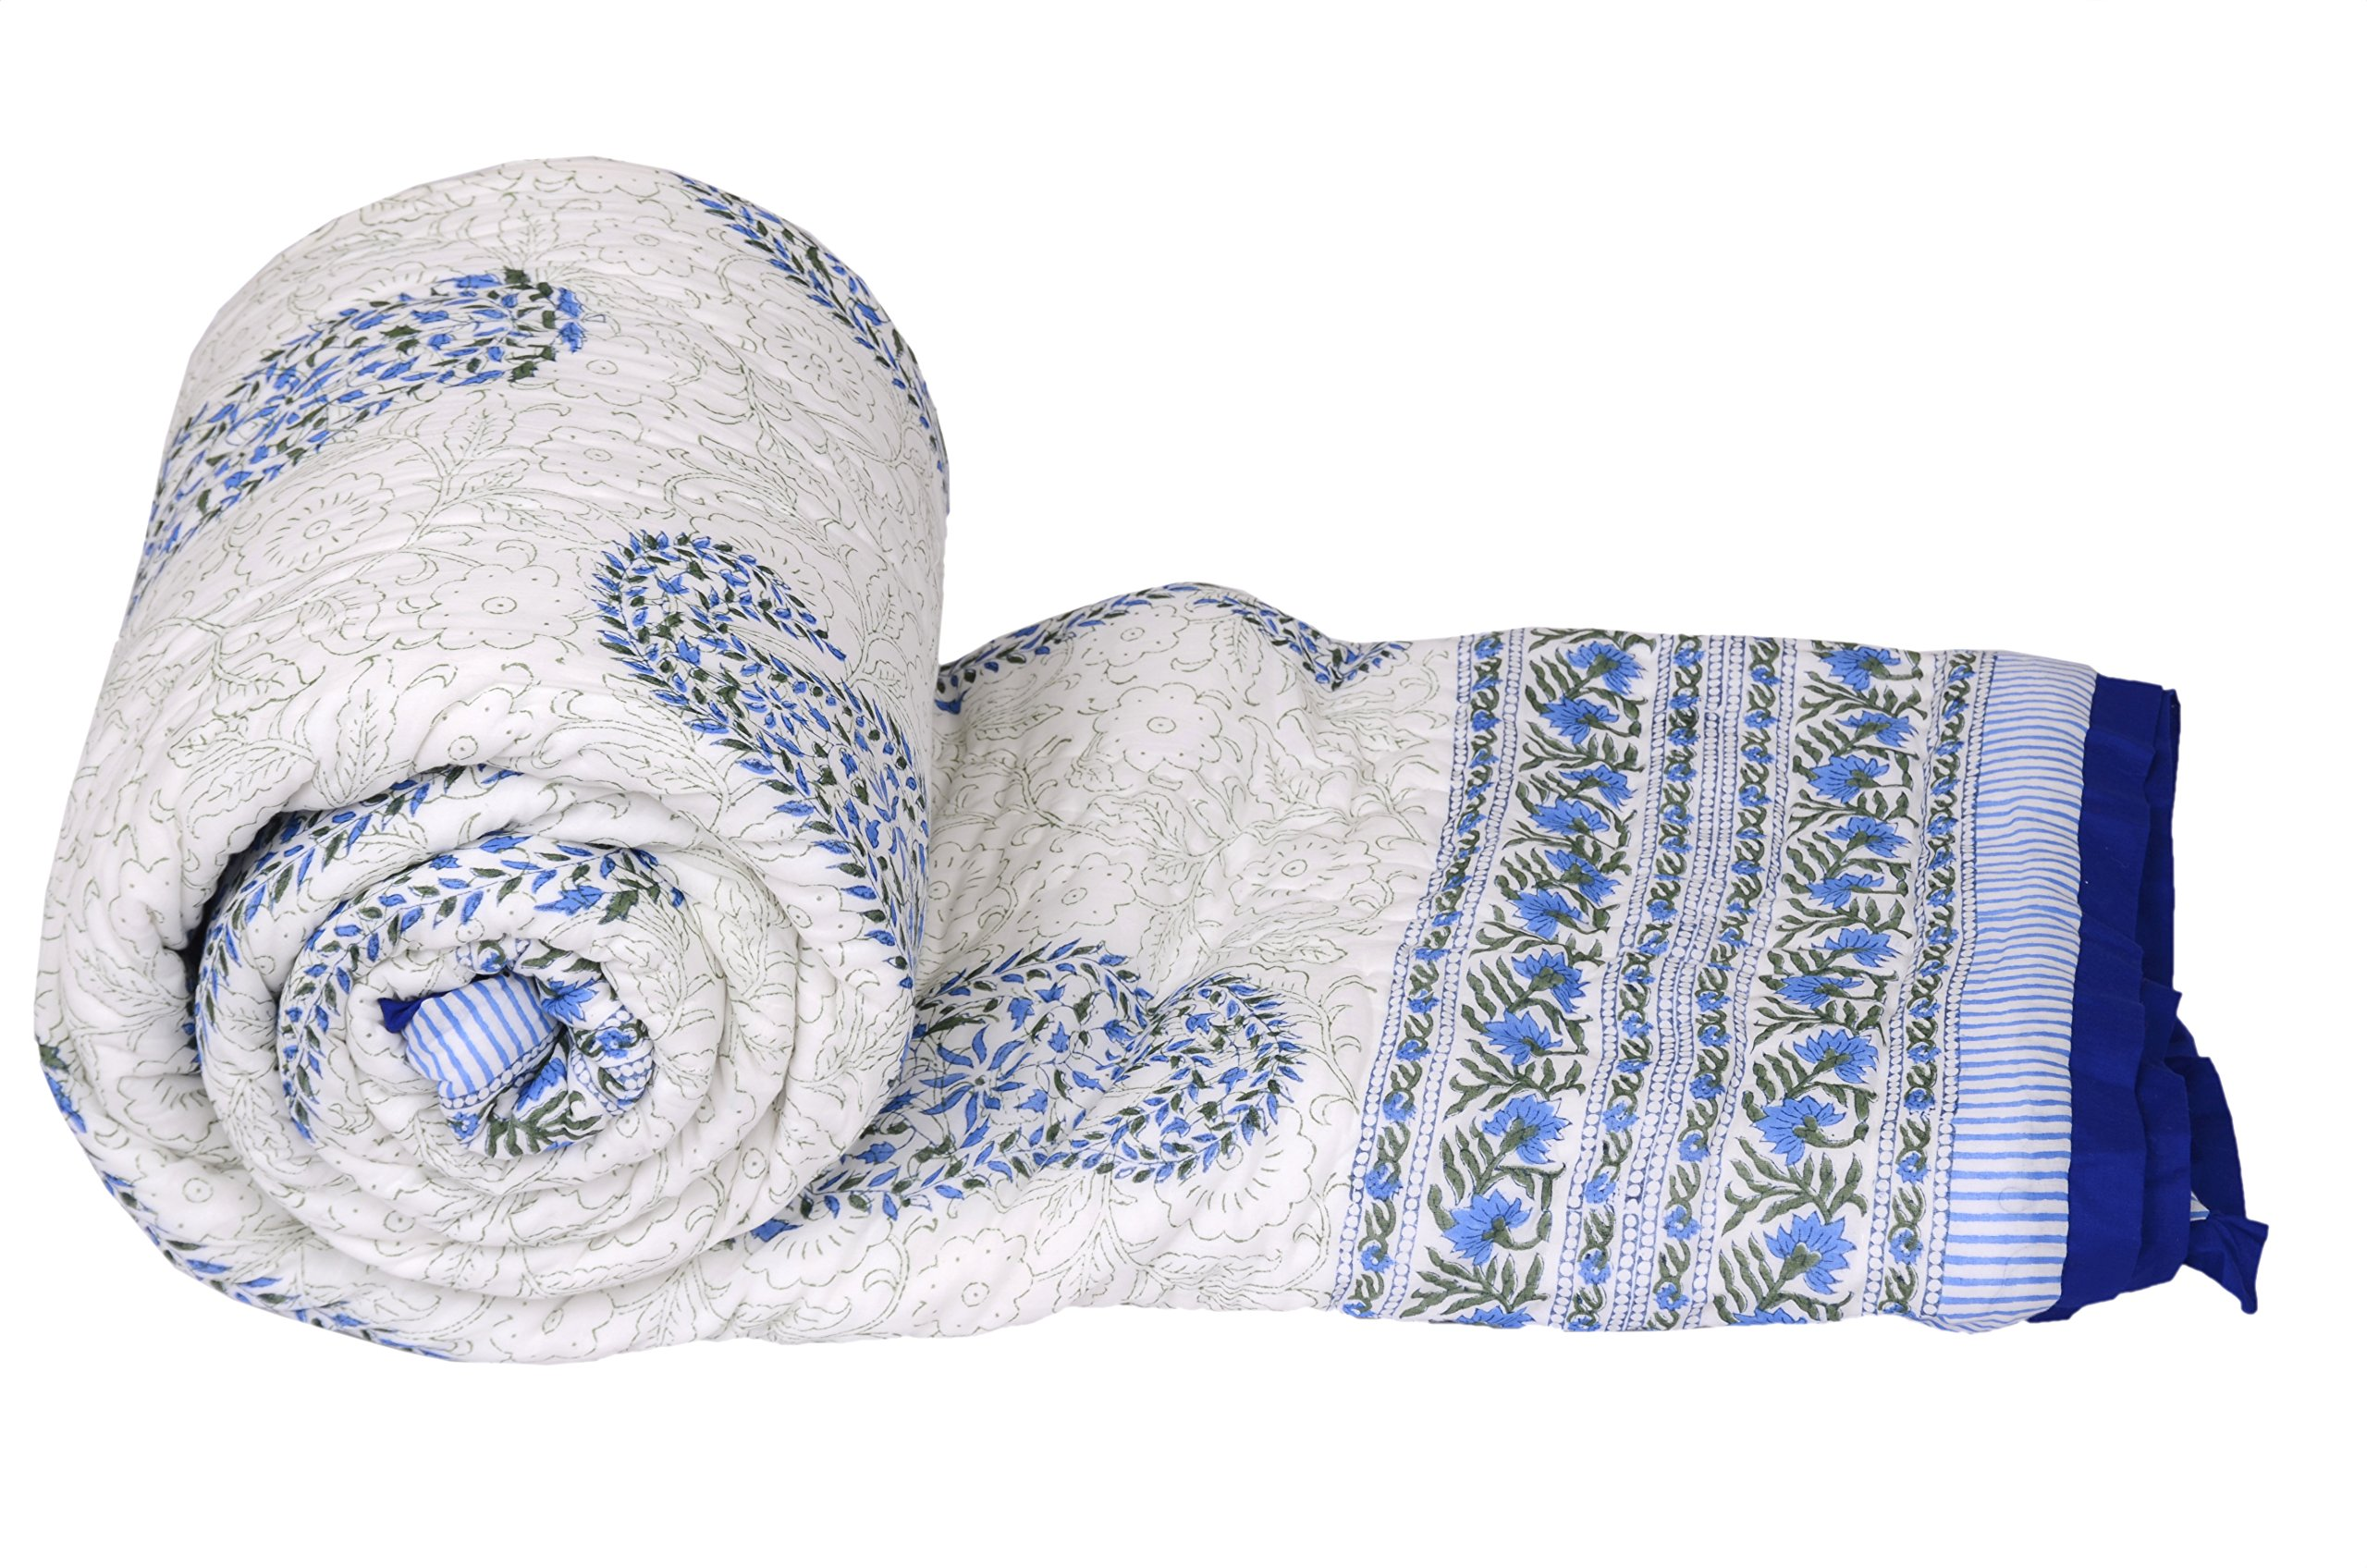 Paisley Quilt Handcrafted In India With Hand Block Printing- 100% Cotton, Super Soft, Size- 90 x 108 Inches, King Size